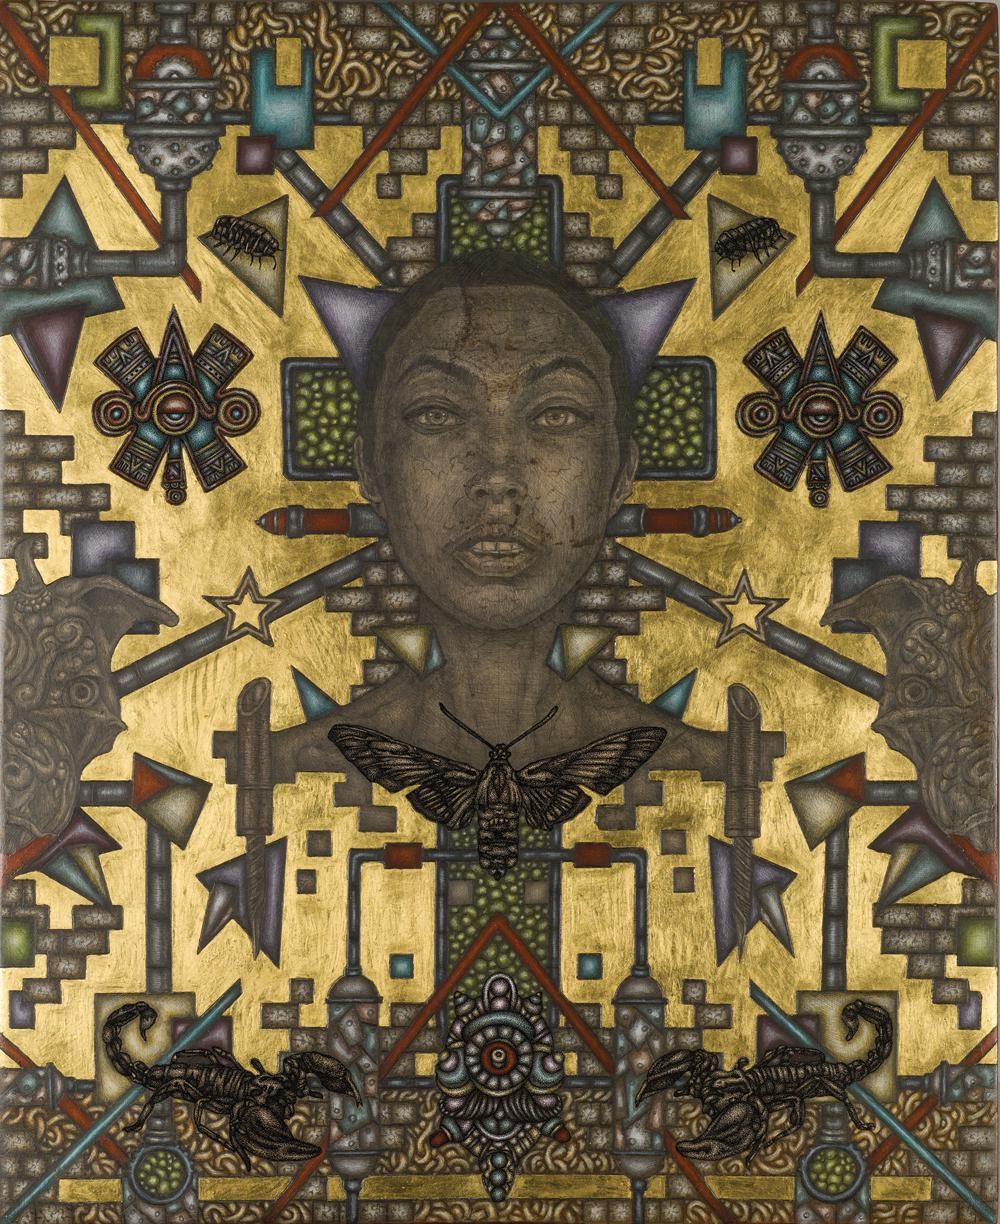 Isis, 40 cm x 50 cm, acrylics, pencil, ink and gold 22K, on wood, 2018